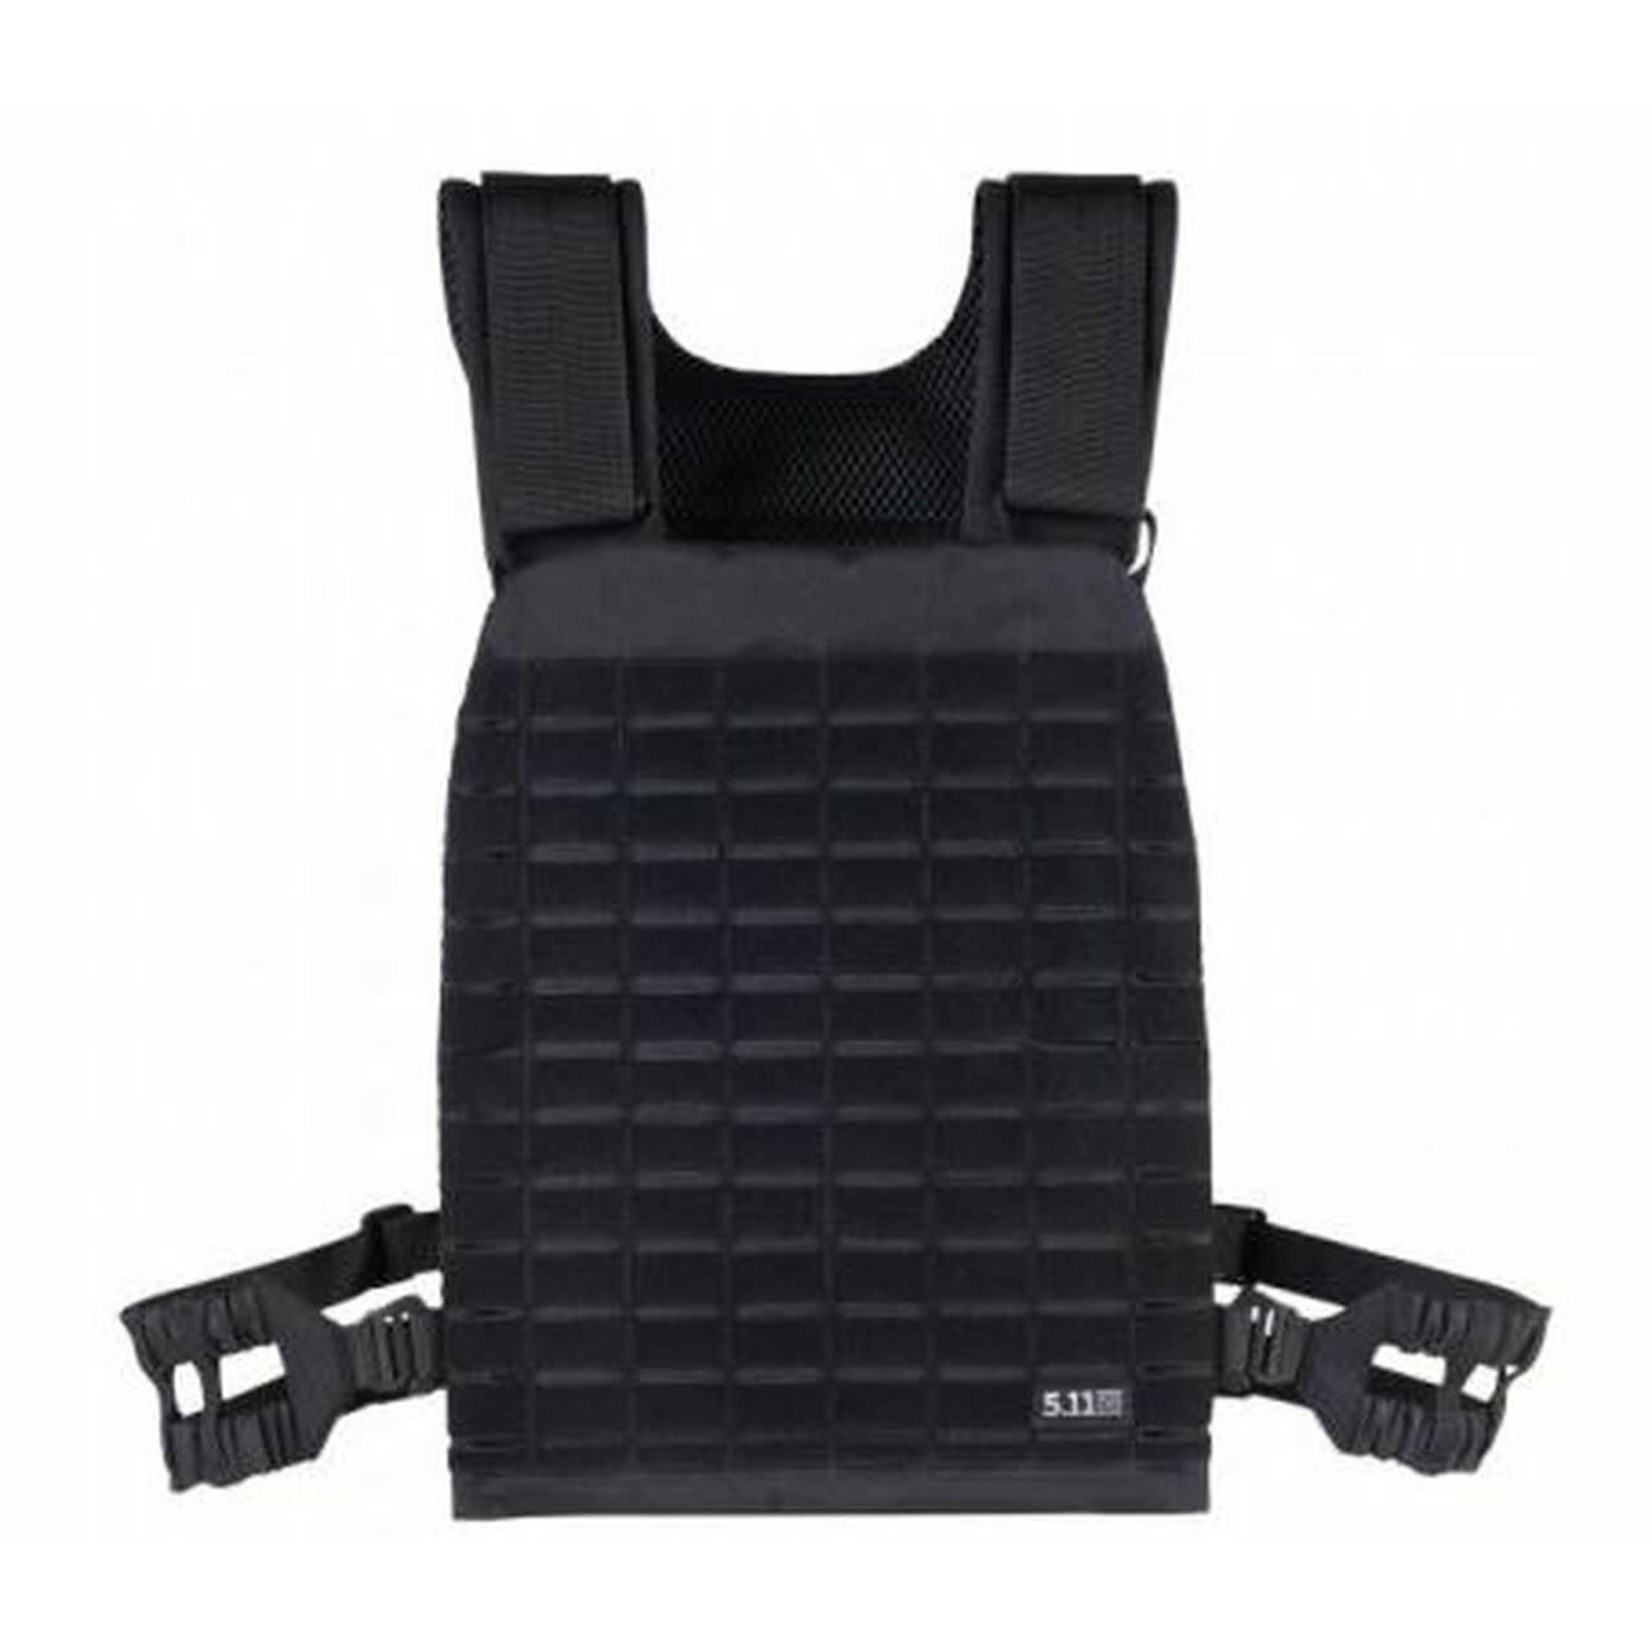 5.11 Tactical 5.11 Taclite Plate Carrier